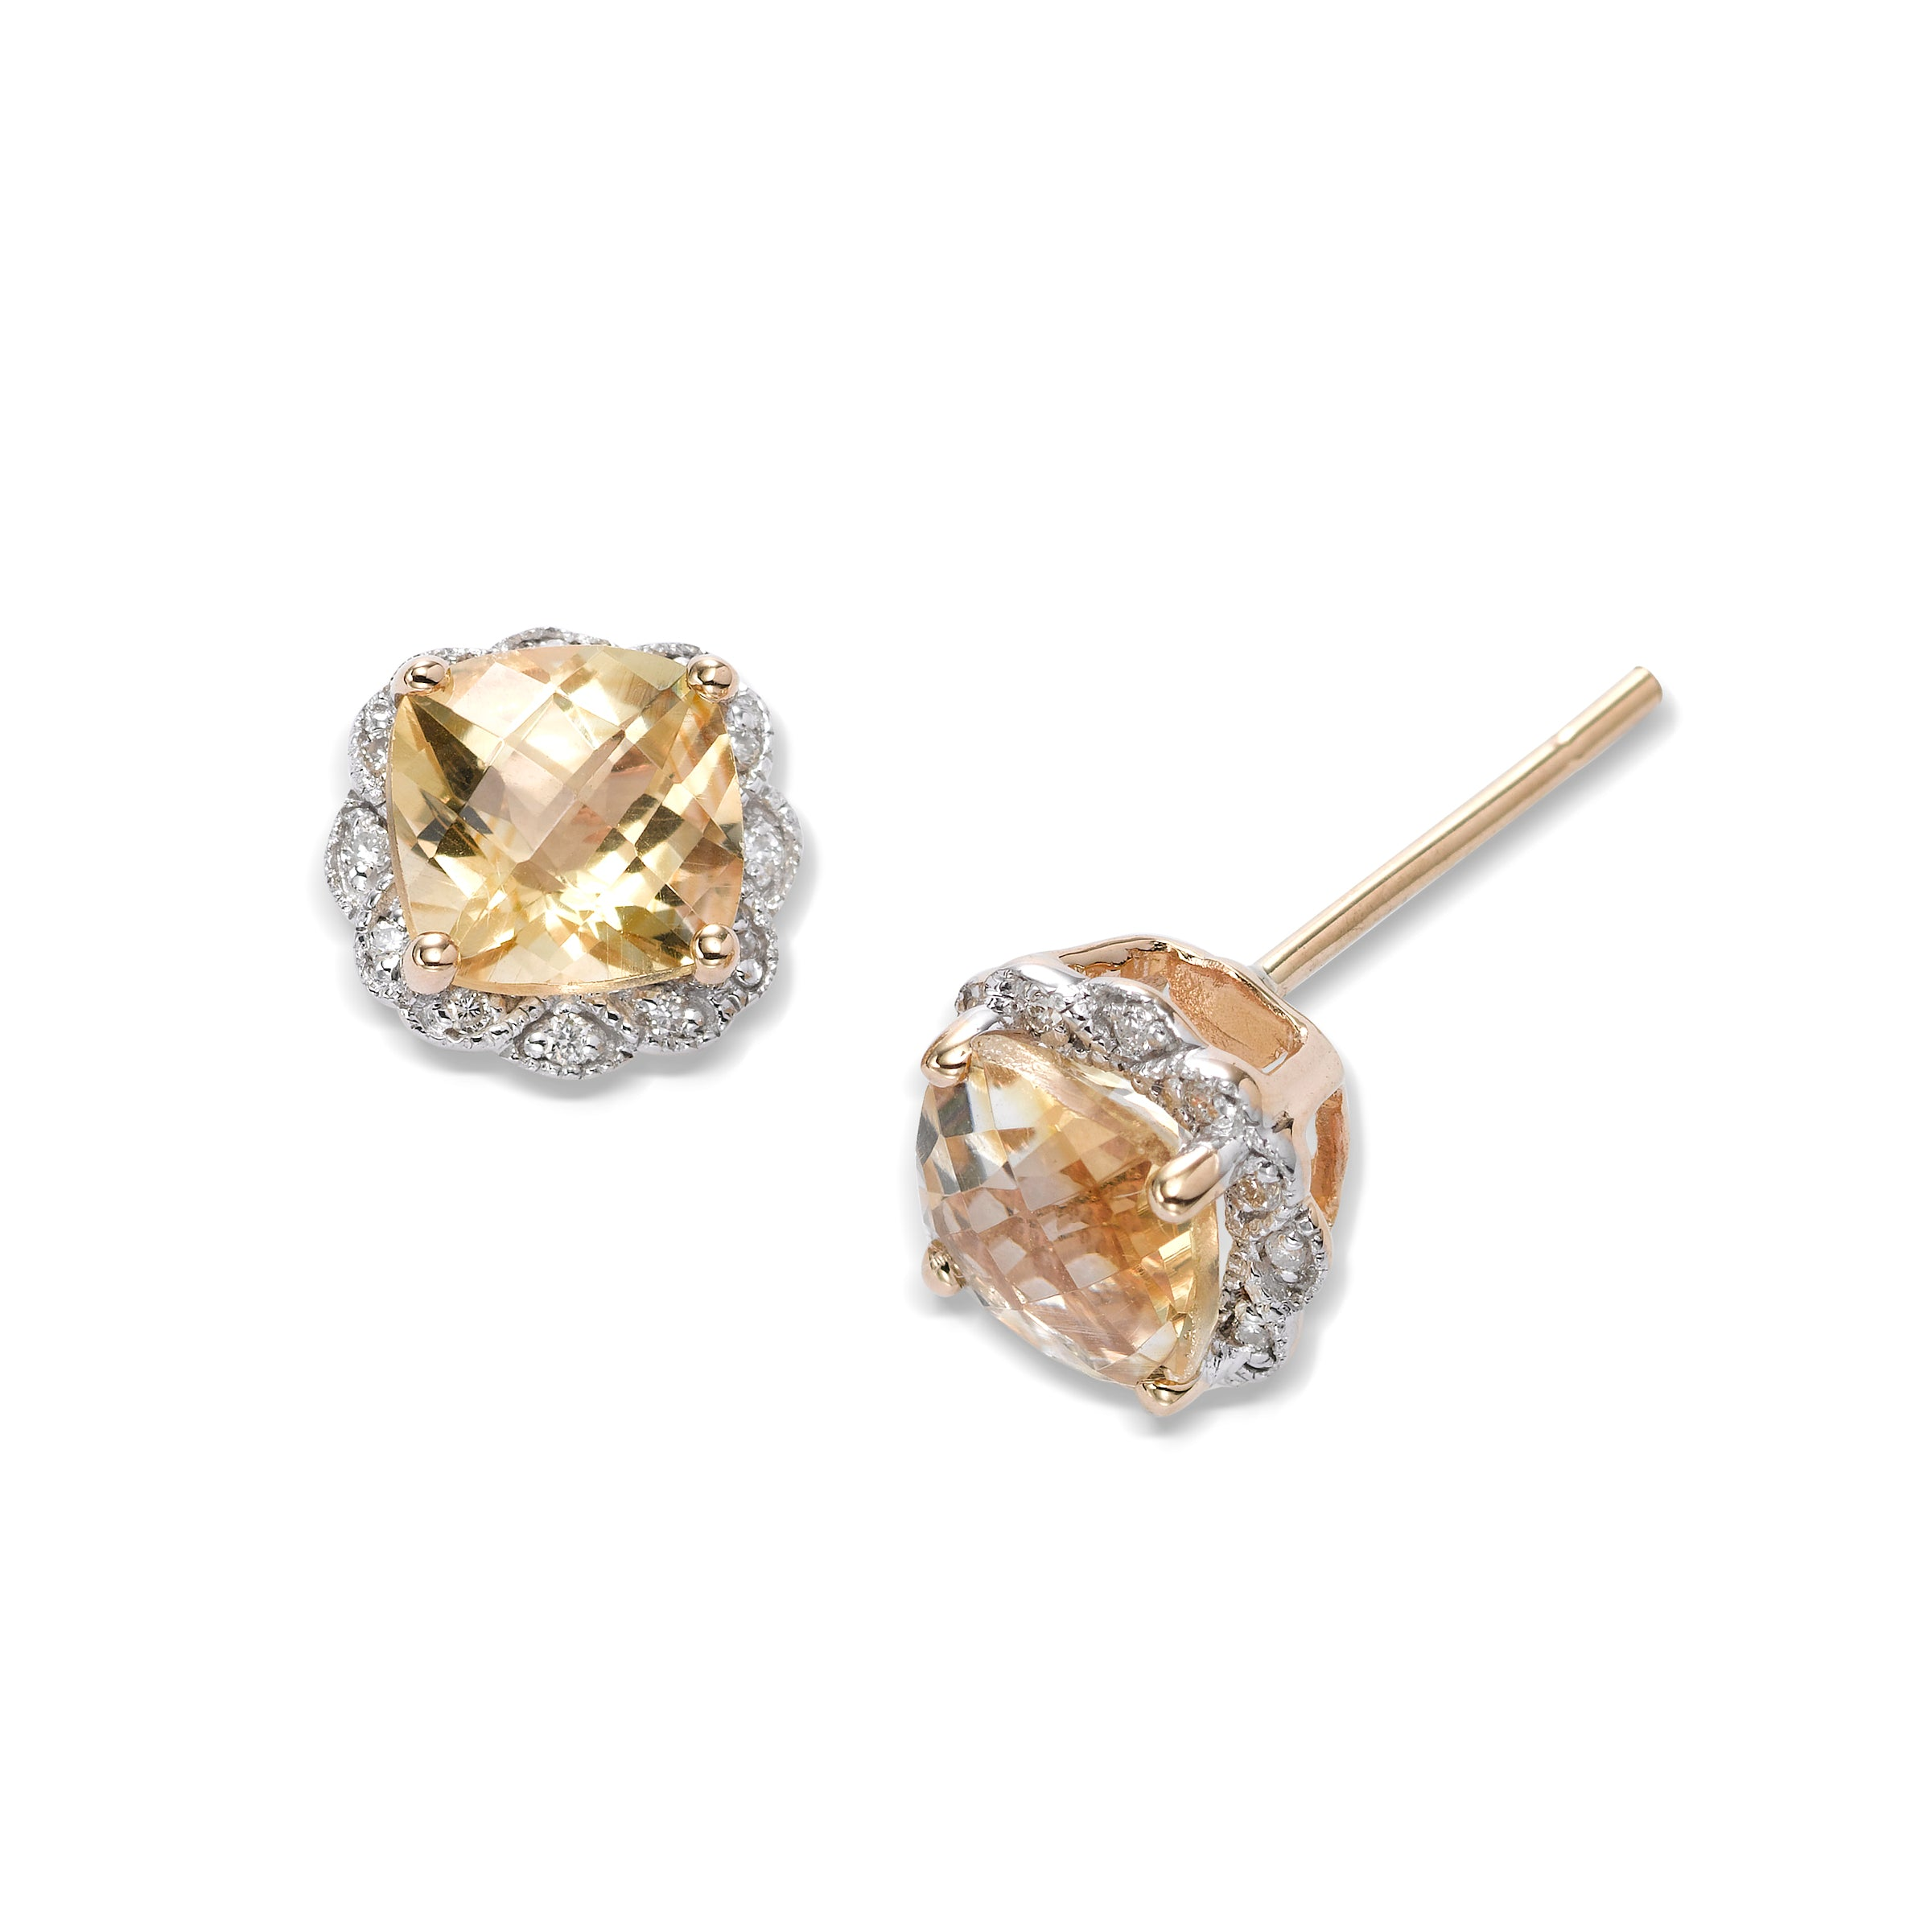 Faceted Citrine and Diamond Earrings, 14K Yellow Gold